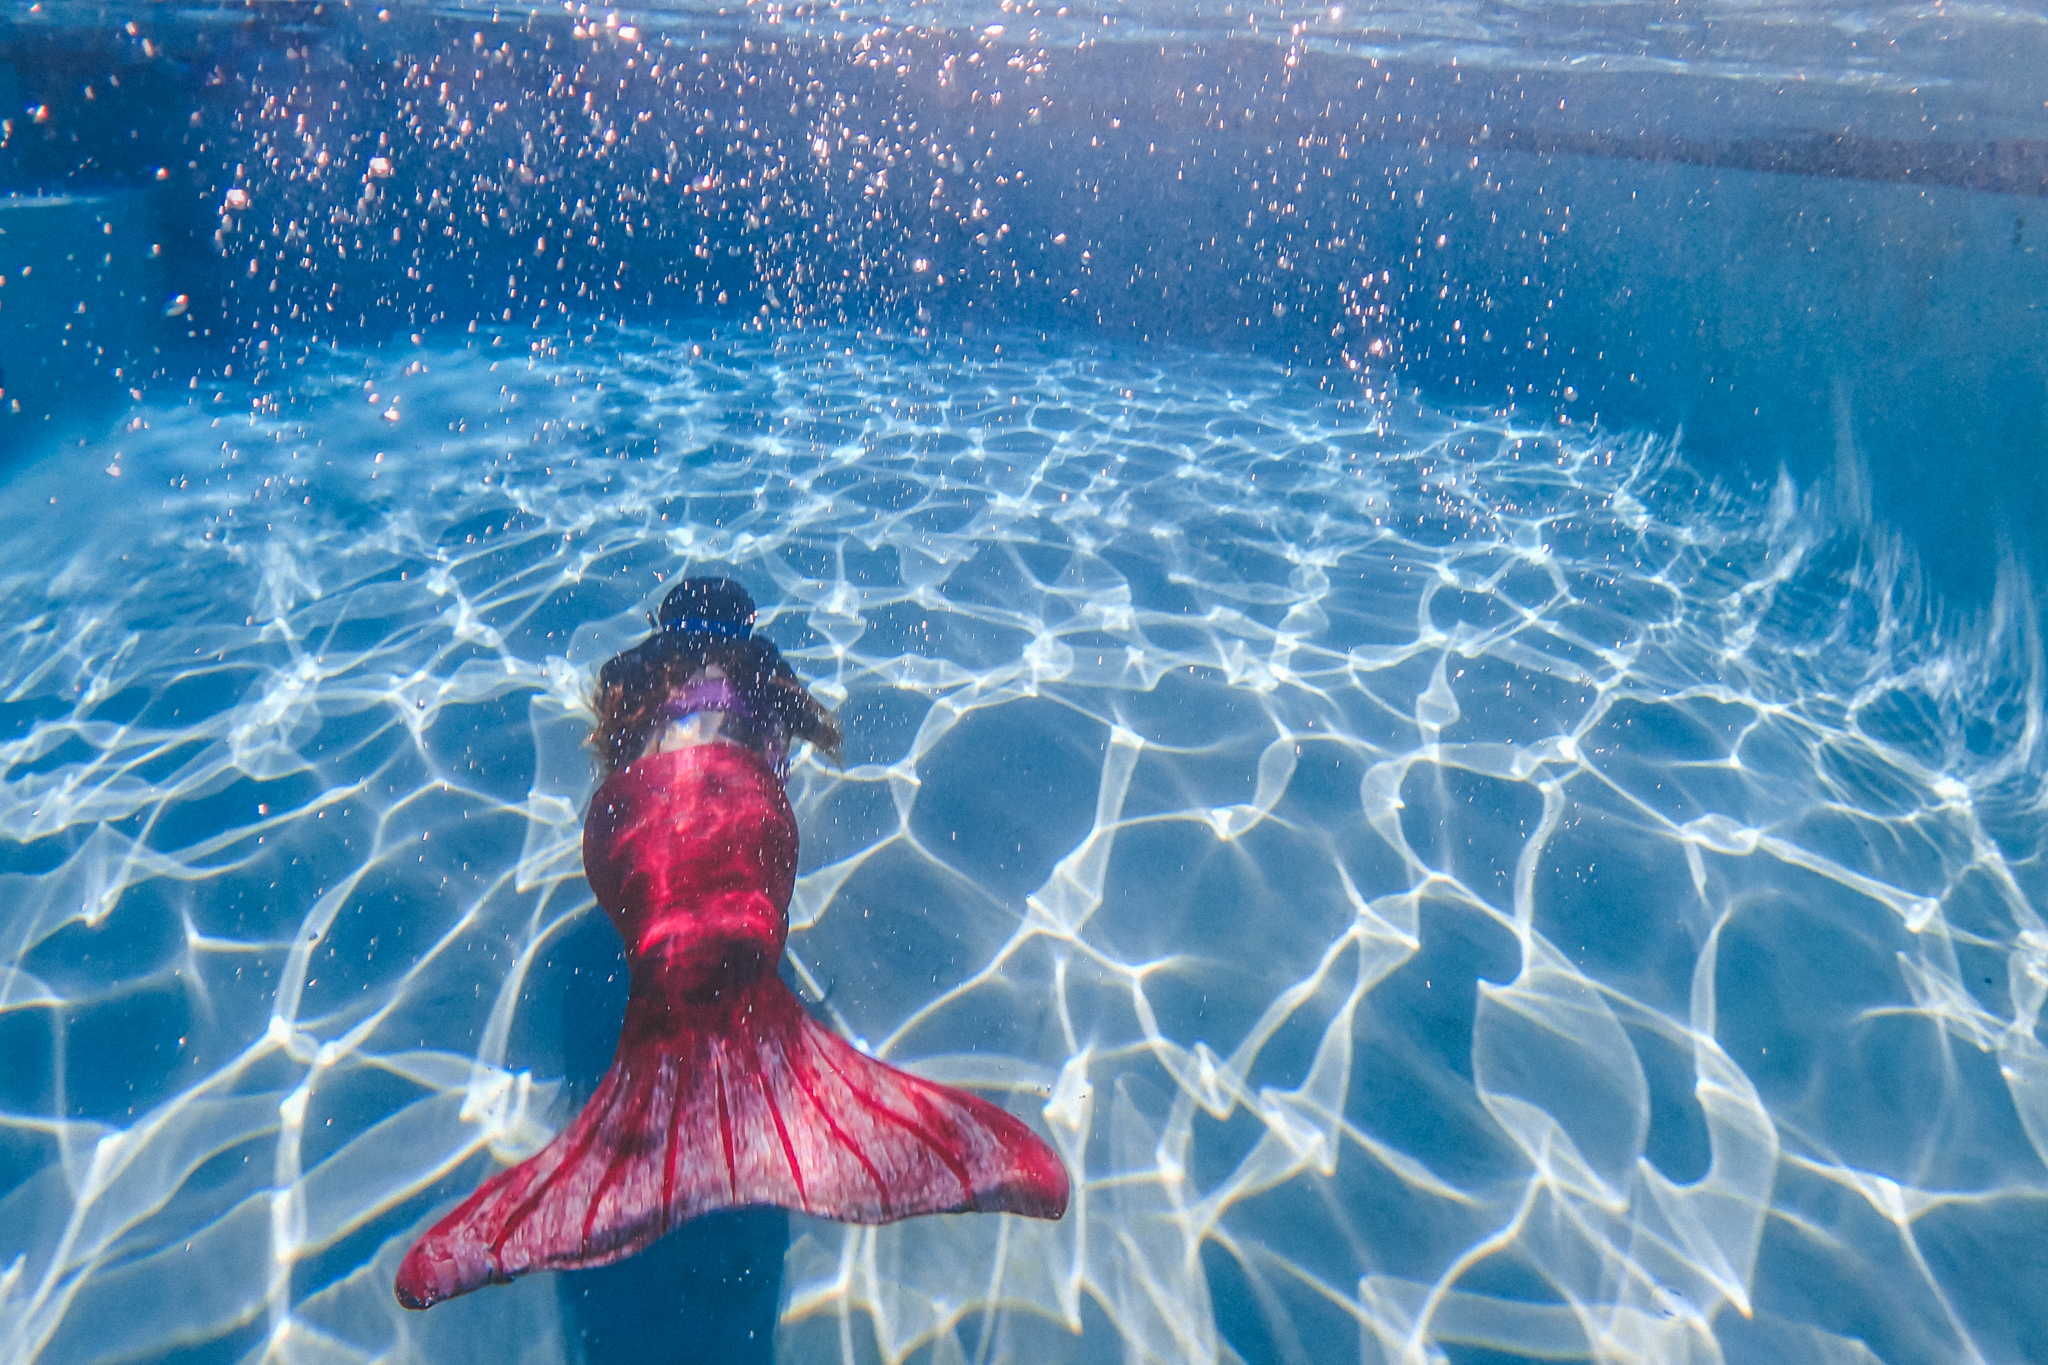 Mermaid photography by Lenkaland Photography